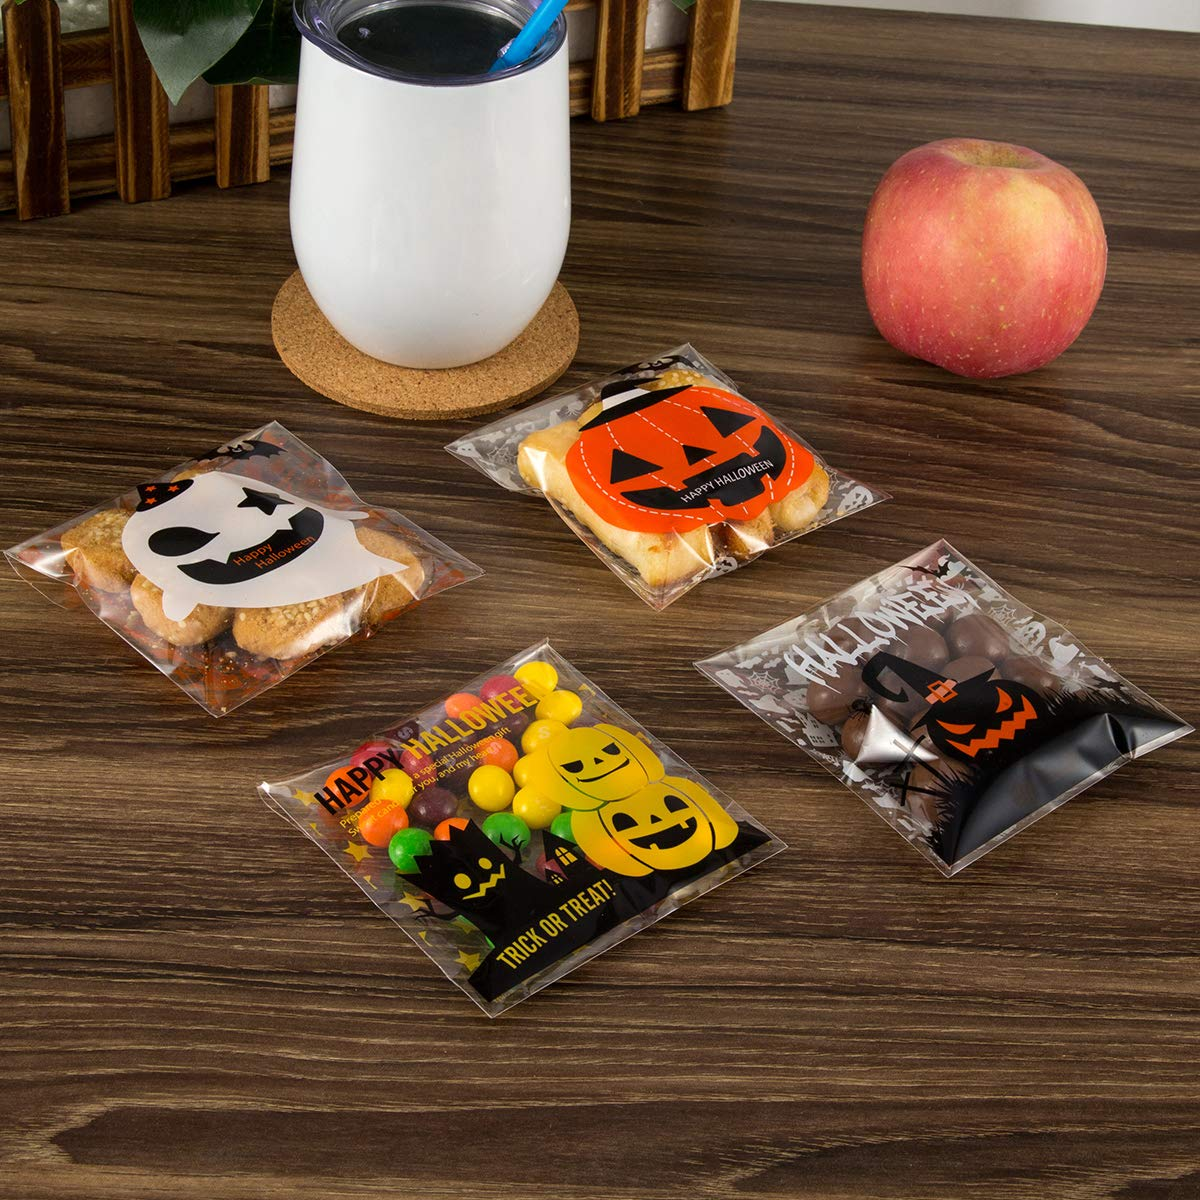 400PCS Halloween Self Adhesive Candy Bags Clear Cellophane Bags 4 Different Style Trick or Treat Bag for Cookie Bakery Biscuit Snacks Dessert Homemade Crafts by Homfshop (Image #5)